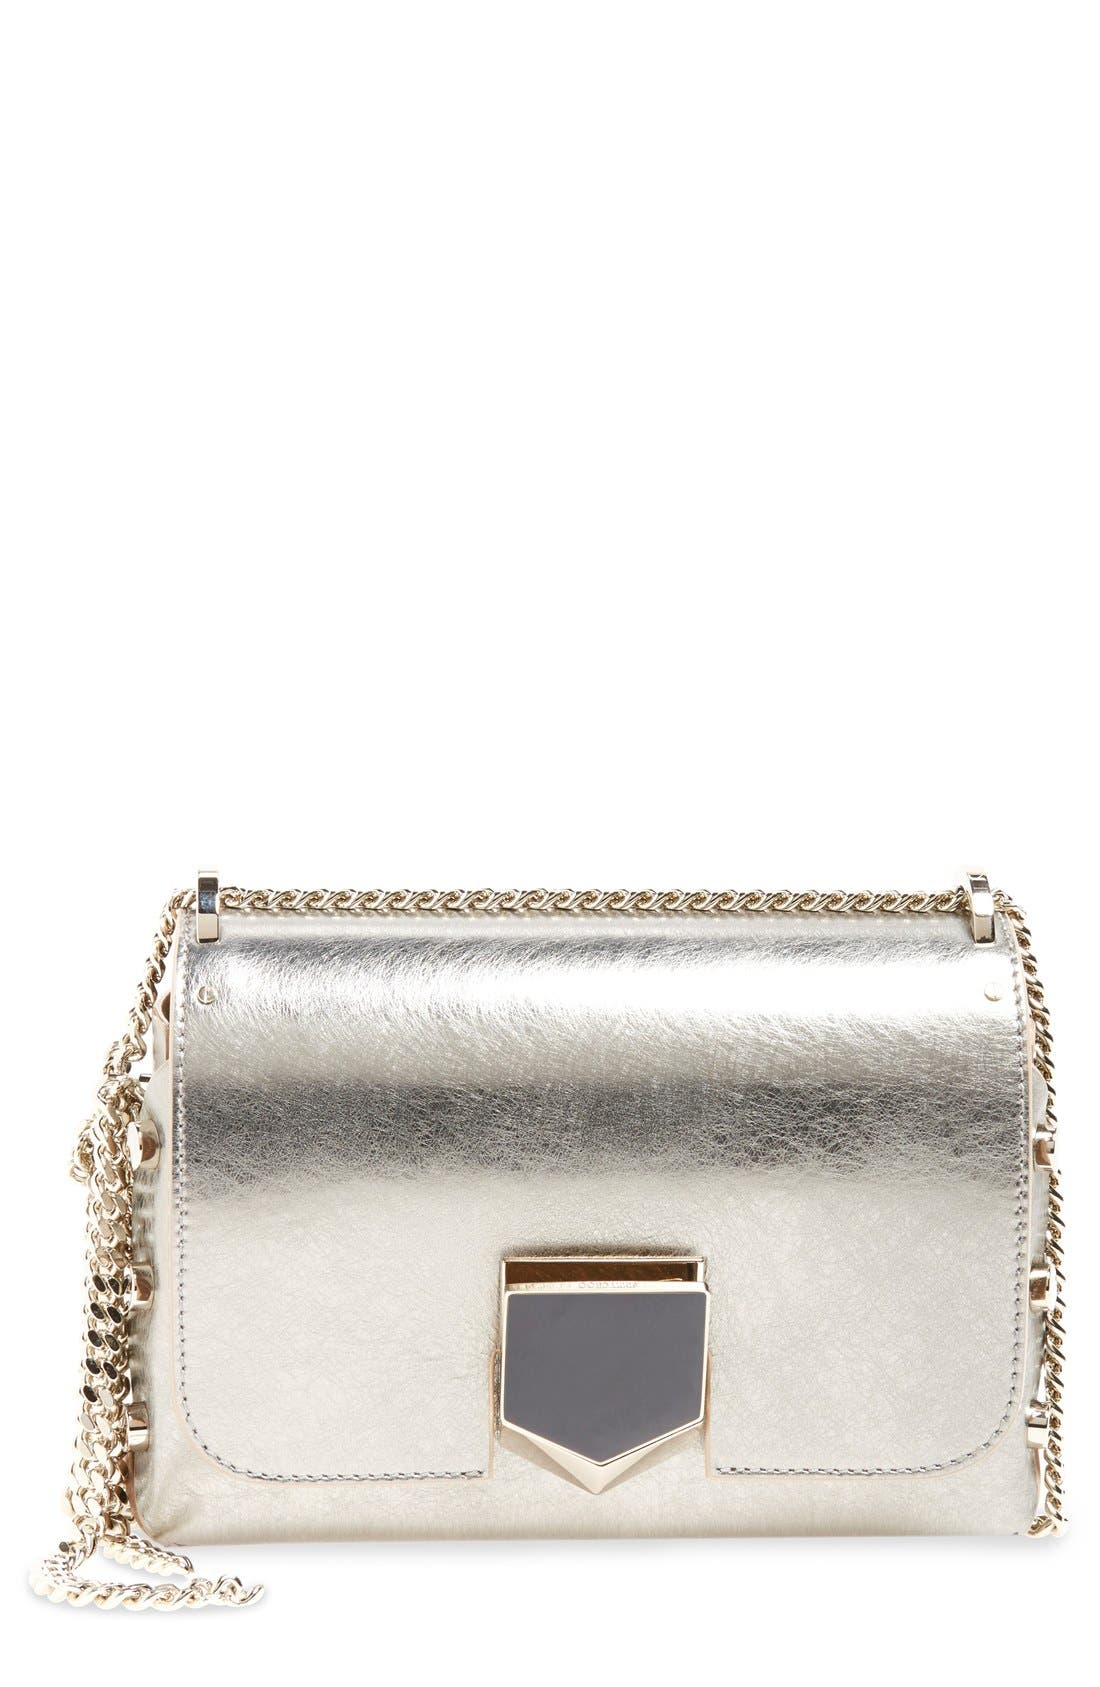 'Lockett Petite' Metallic Leather Shoulder Bag,                             Main thumbnail 1, color,                             Vintage Silver